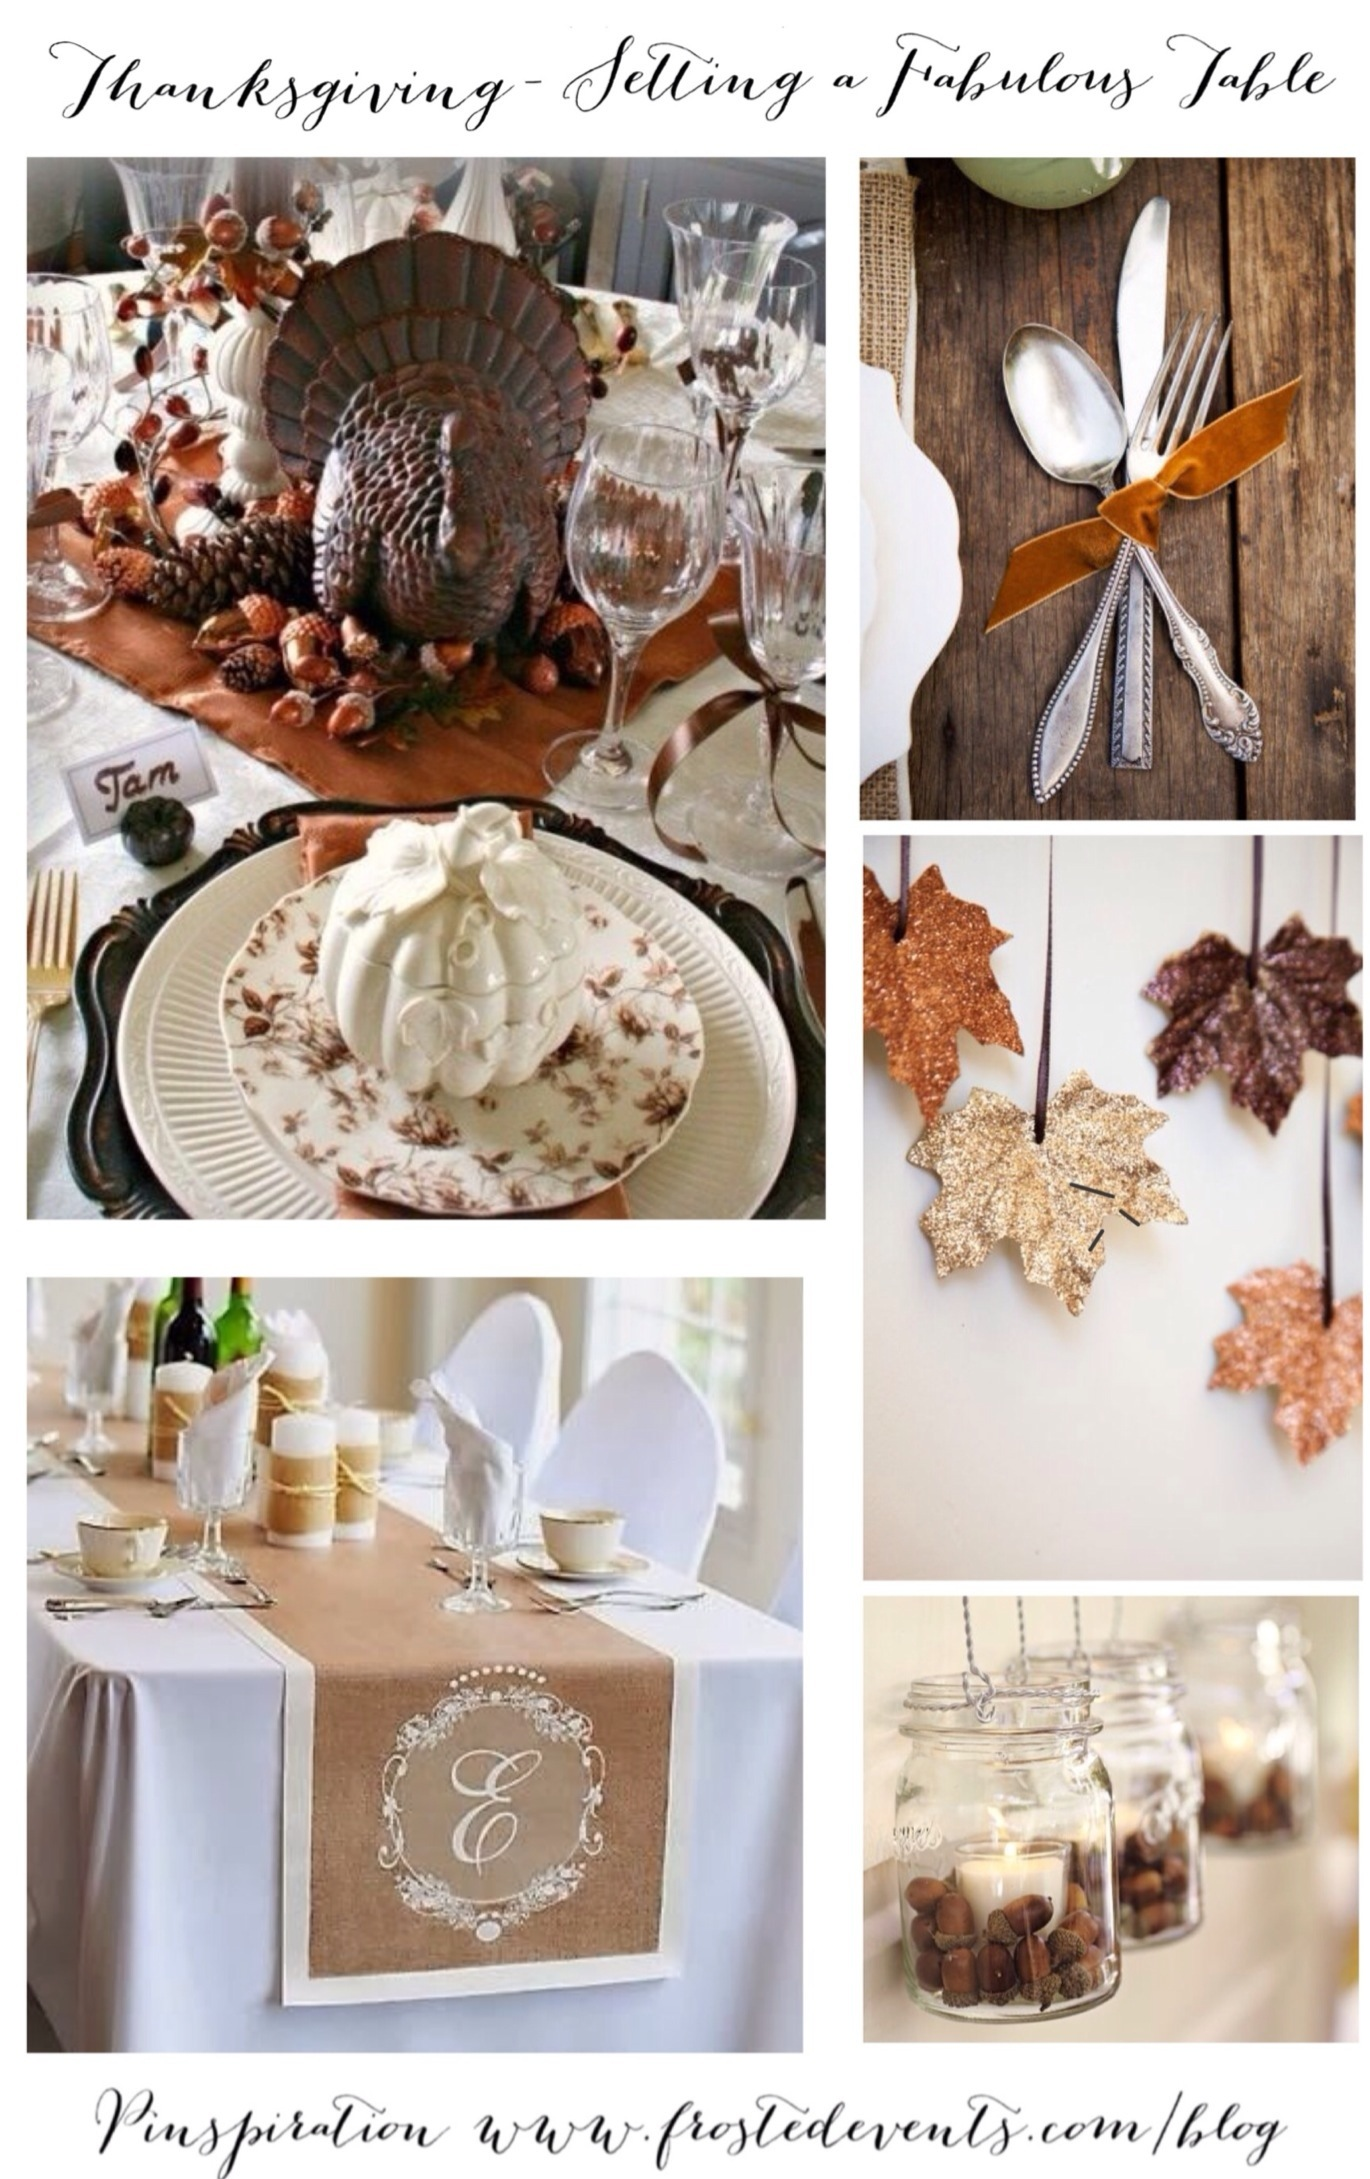 Thanksgiving-  Setting a Fabulous Table www.frostedevents.com  Thanksgiving Inspiration & Ideas